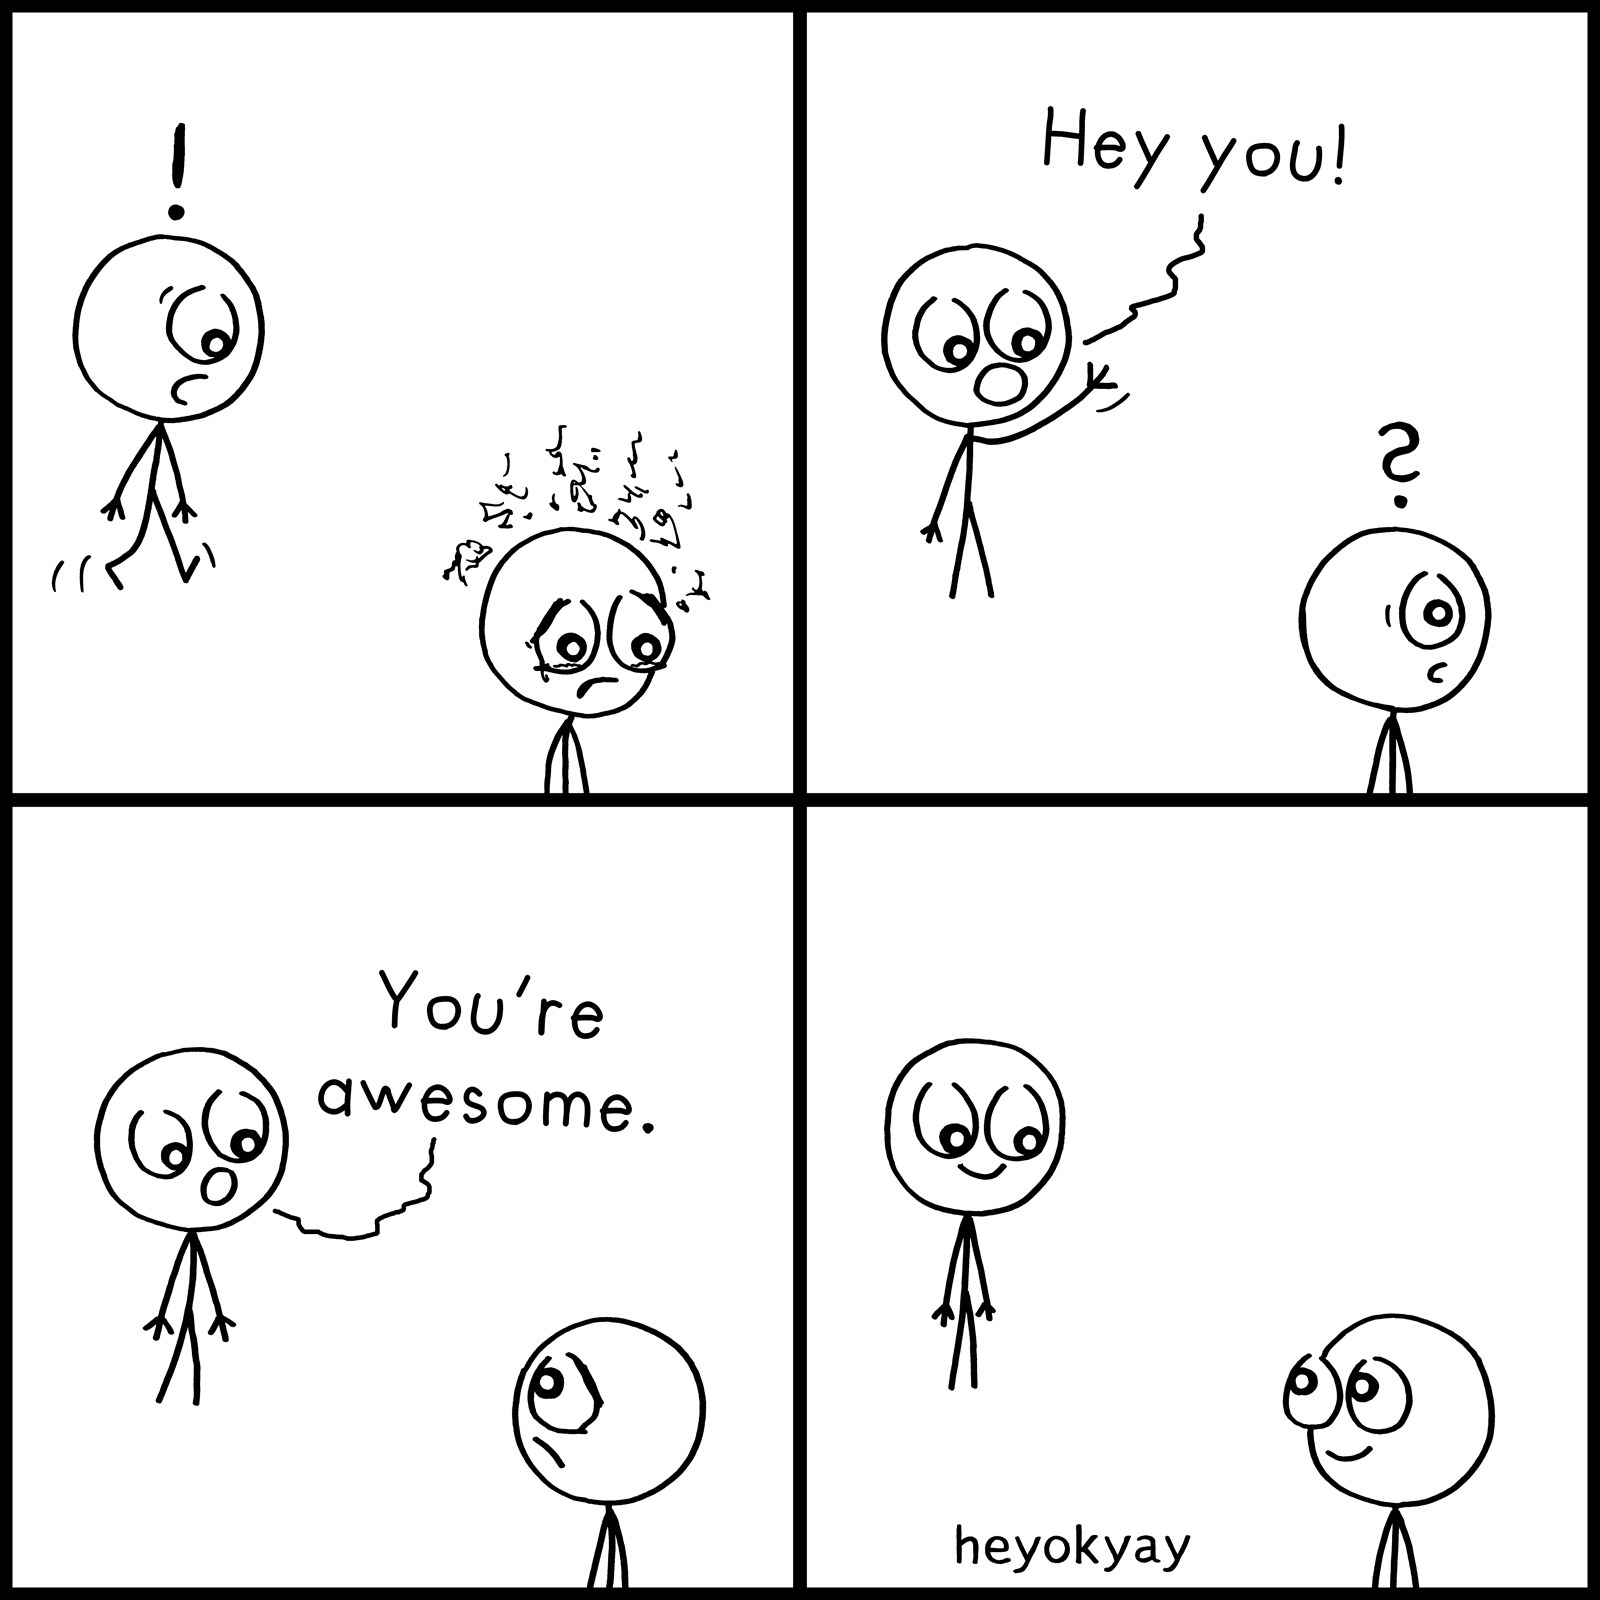 Hey You heyokyay comic